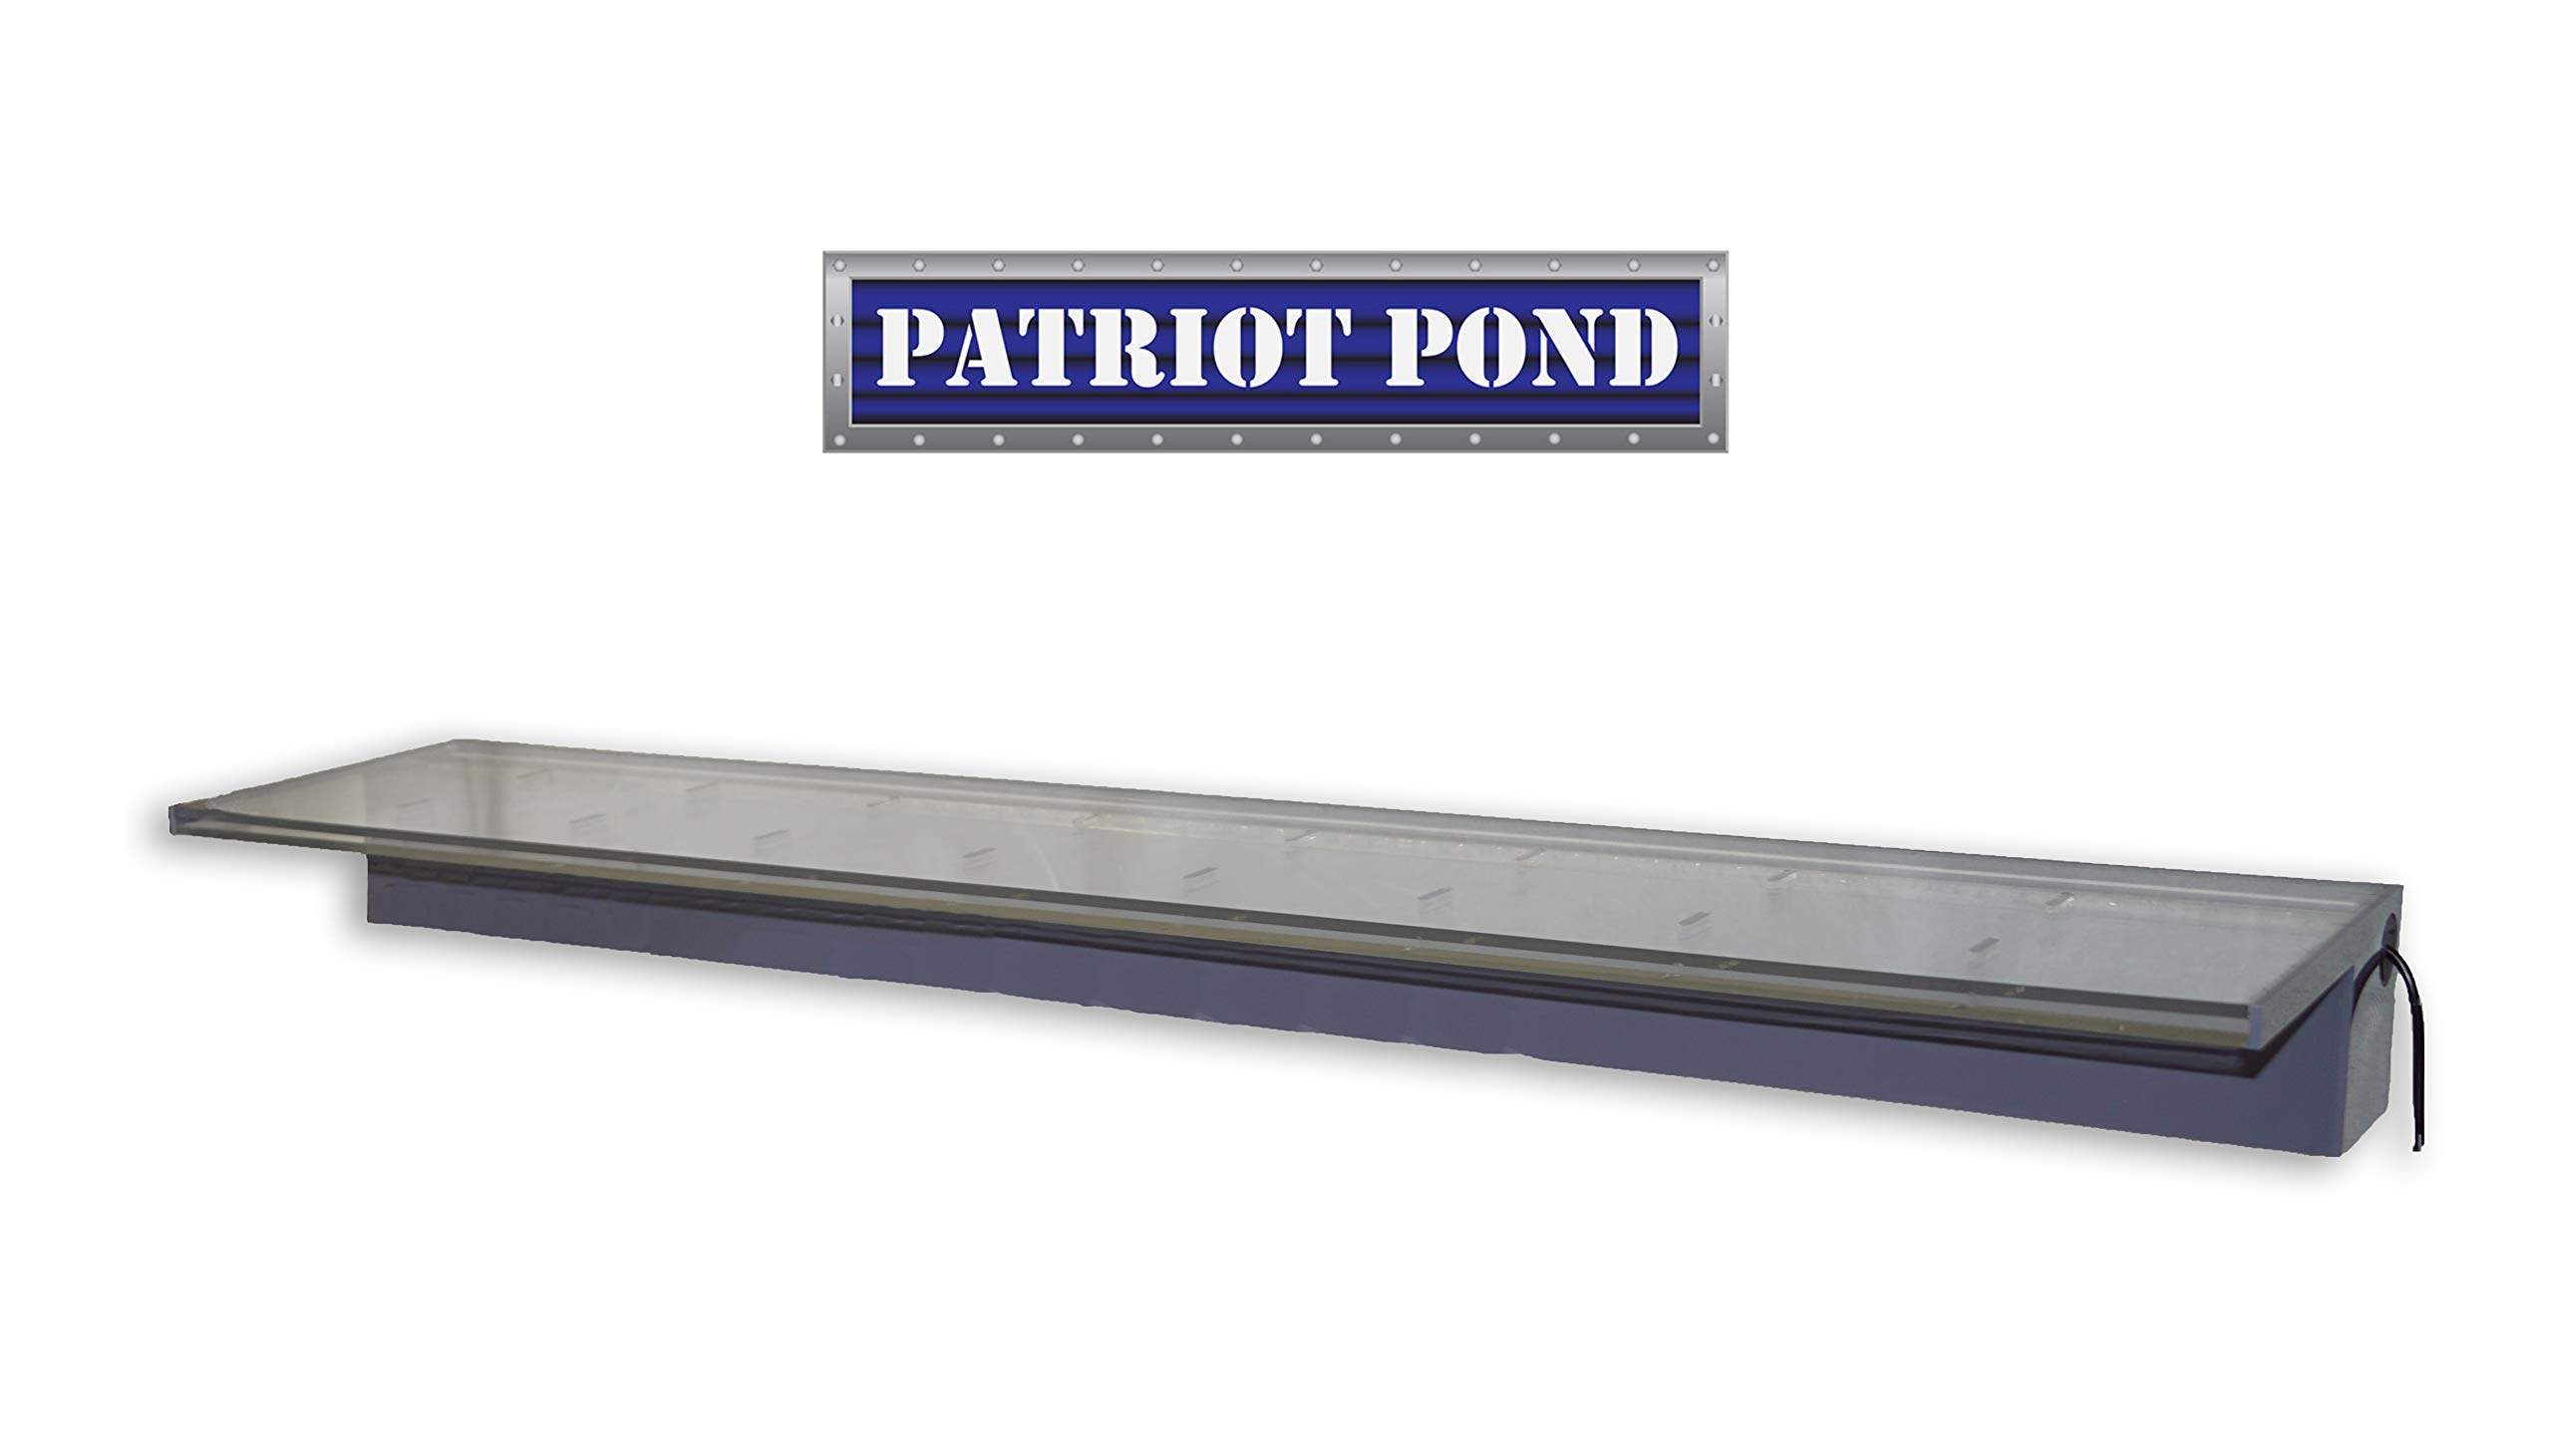 Patriot Sheer Elegance SE24CC Lighted Acrylic Spillway - 24'' Color Changing Spillway by Patriot (Image #6)